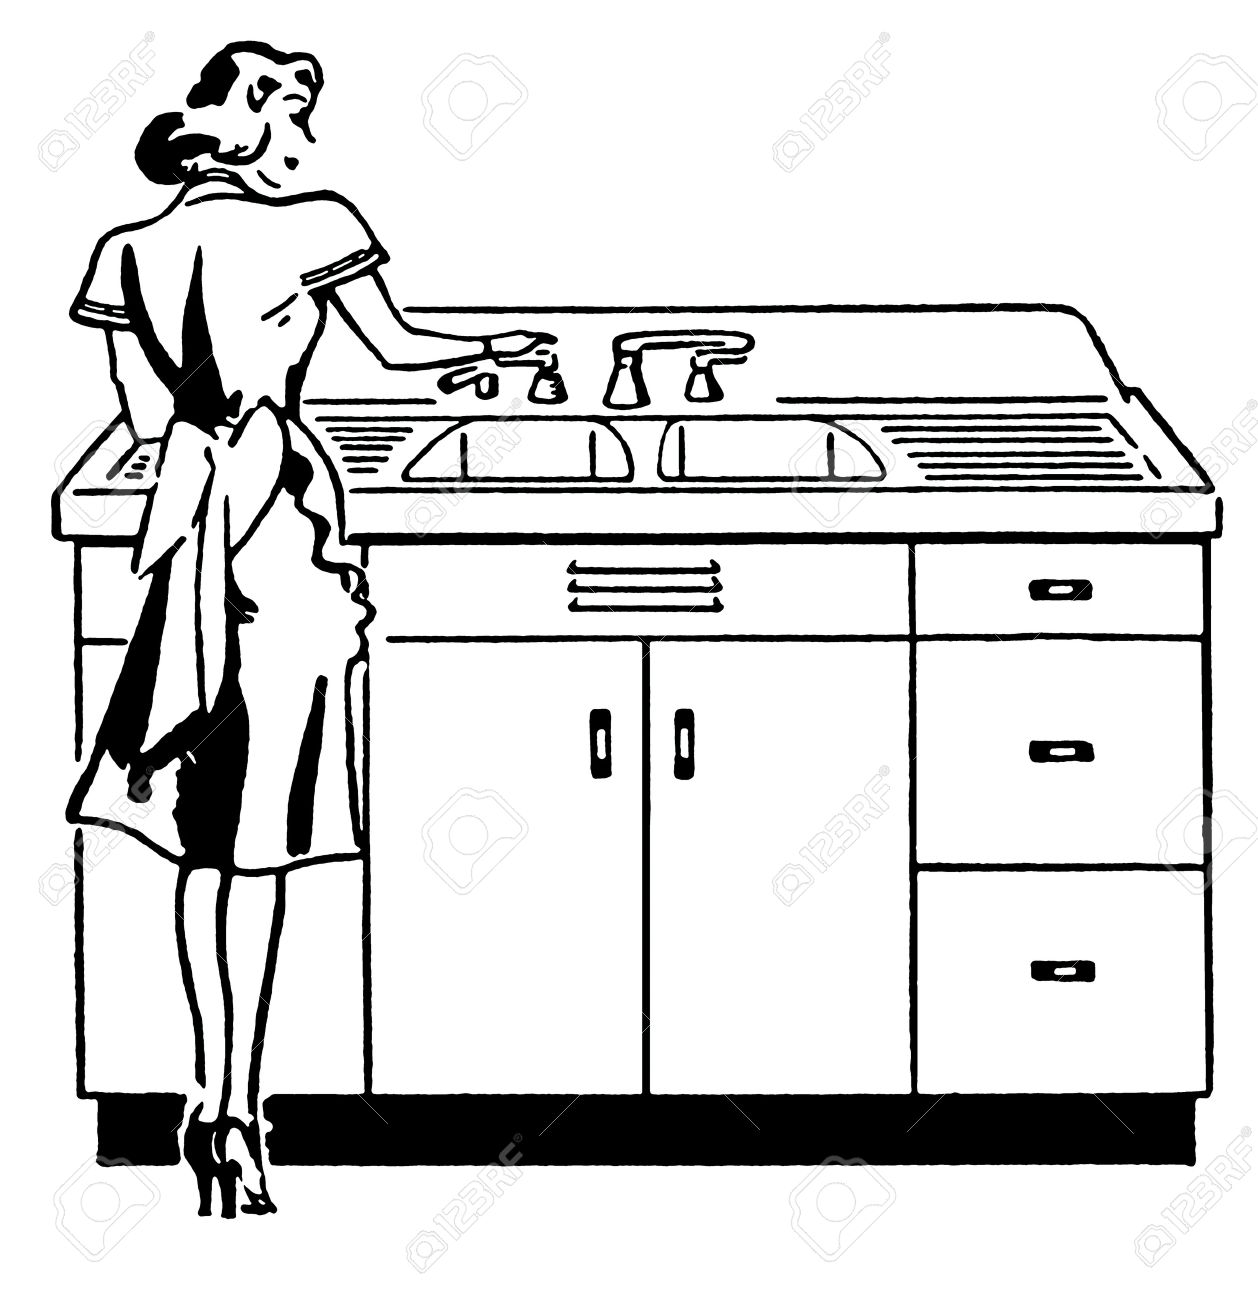 A Black And White Version Of A Vintage Illustration Of A Woman ... for Kitchen Sink Clipart Black And White  588gtk